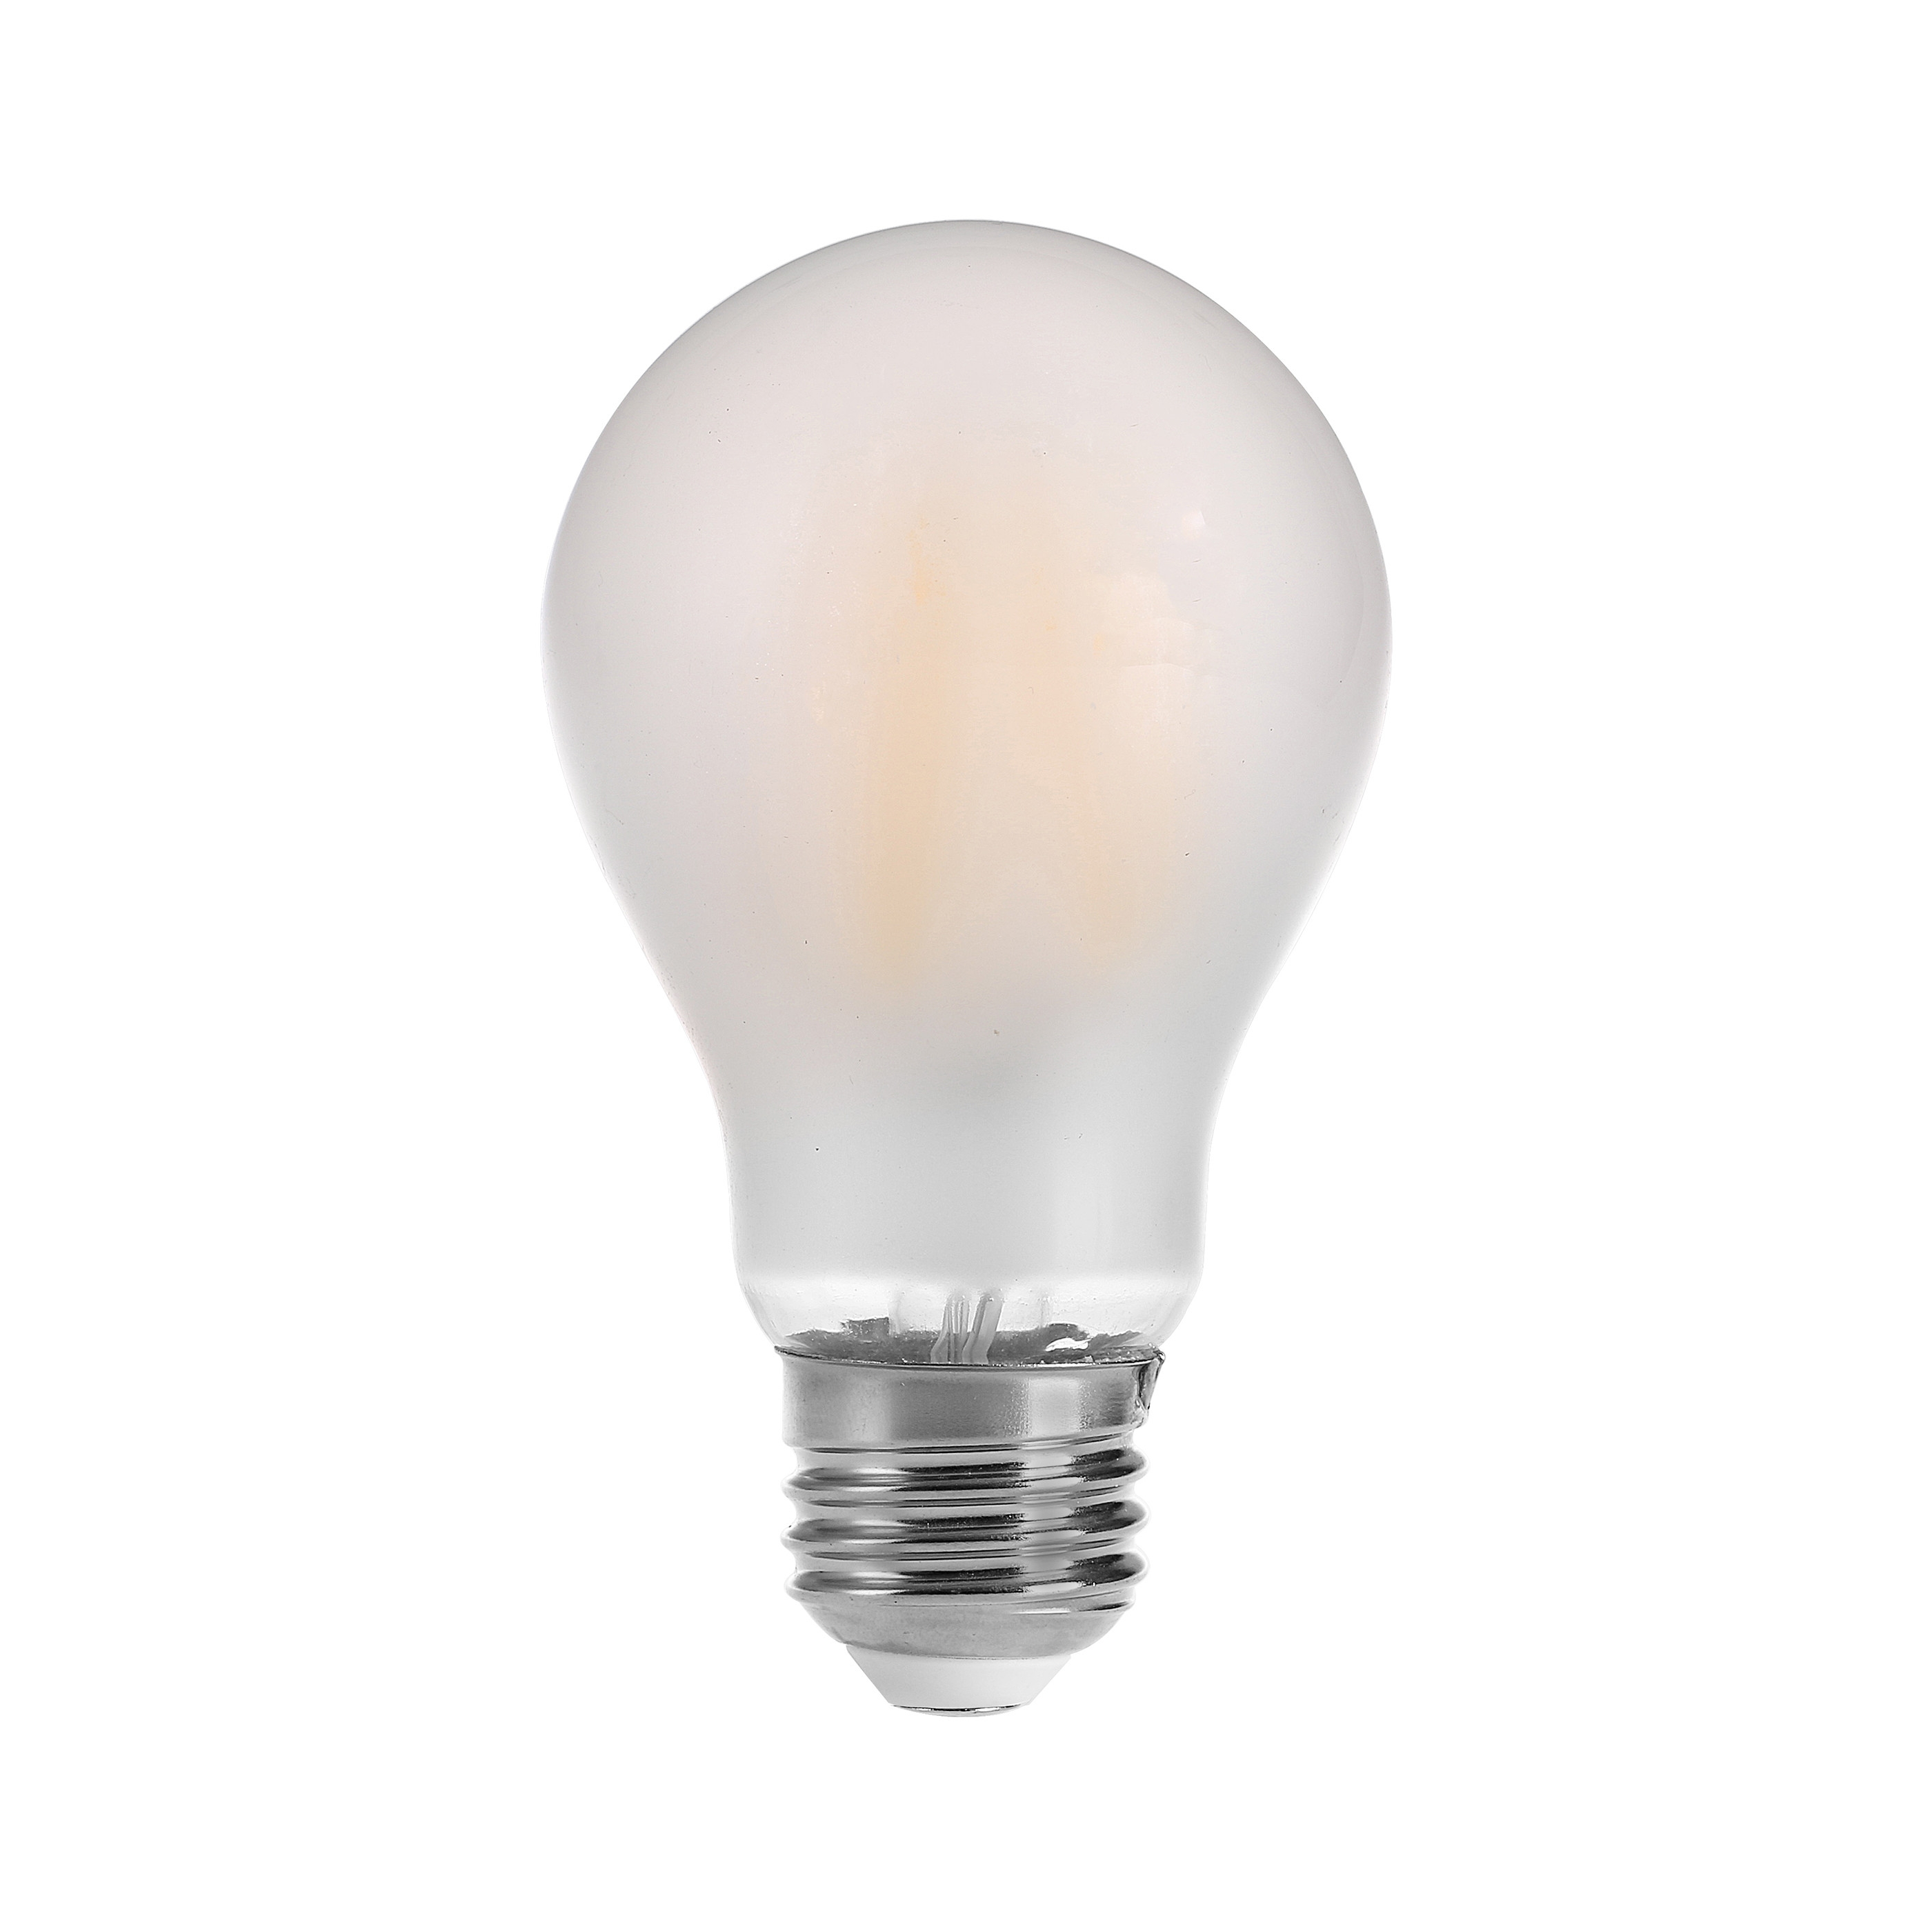 Light And Bulbs Manufacturer Supplier Led ChinaLighting IYbf6gv7y